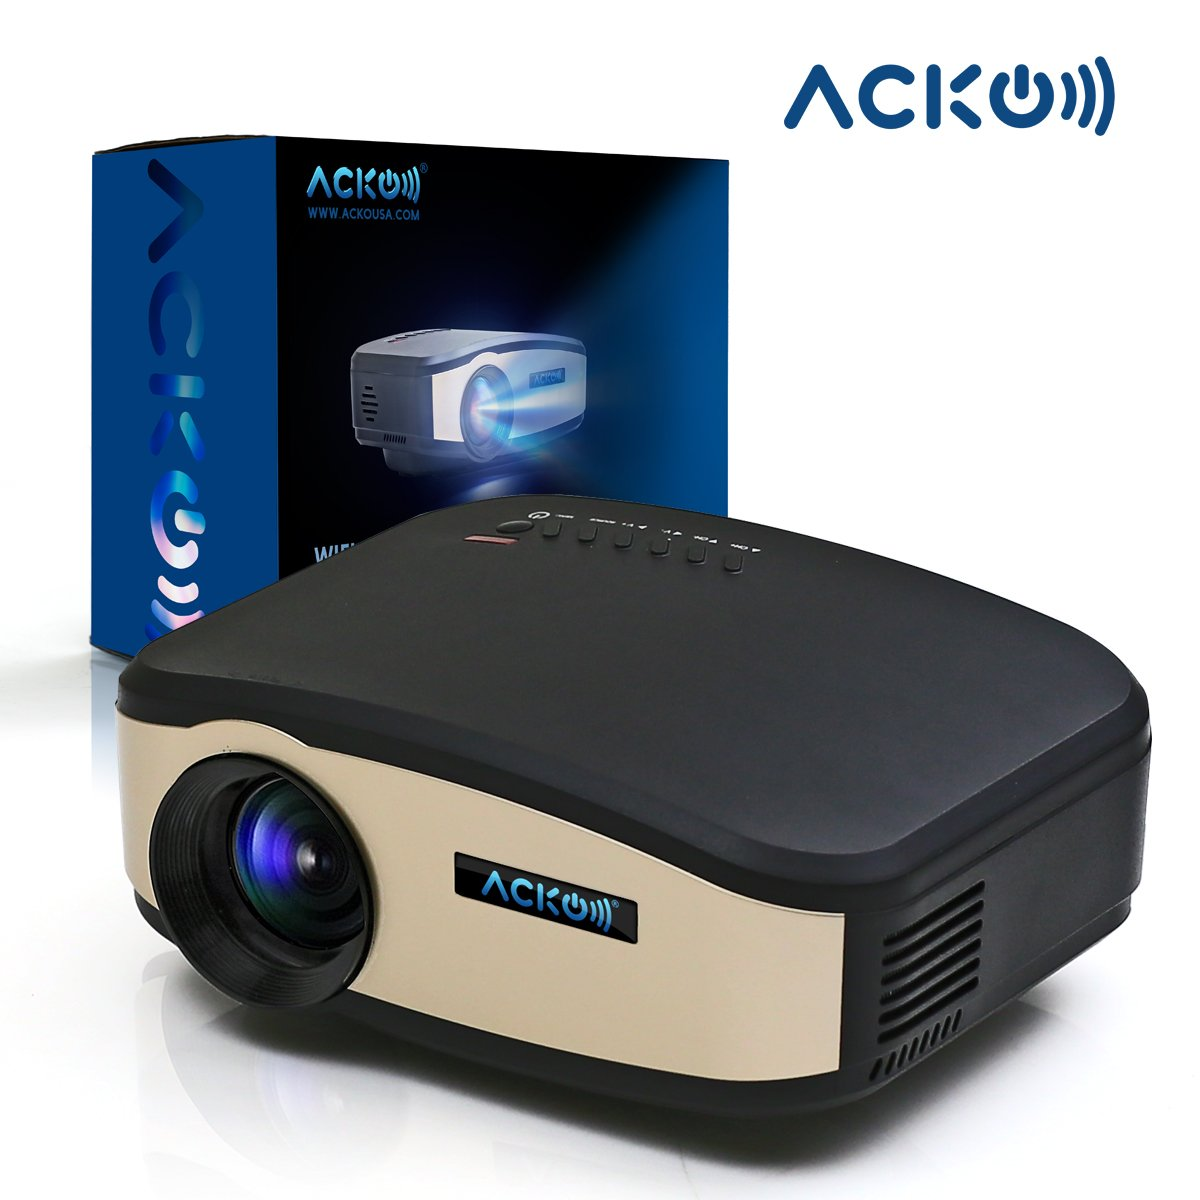 Acko Wifi LED HD Wireless Portable Mini LED Video Multimedia Digital Movie Projector 1200 Lumens Home Theater 1080p USB HDMI VGA Player DVD Television Gaming Computer PC Laptop Black